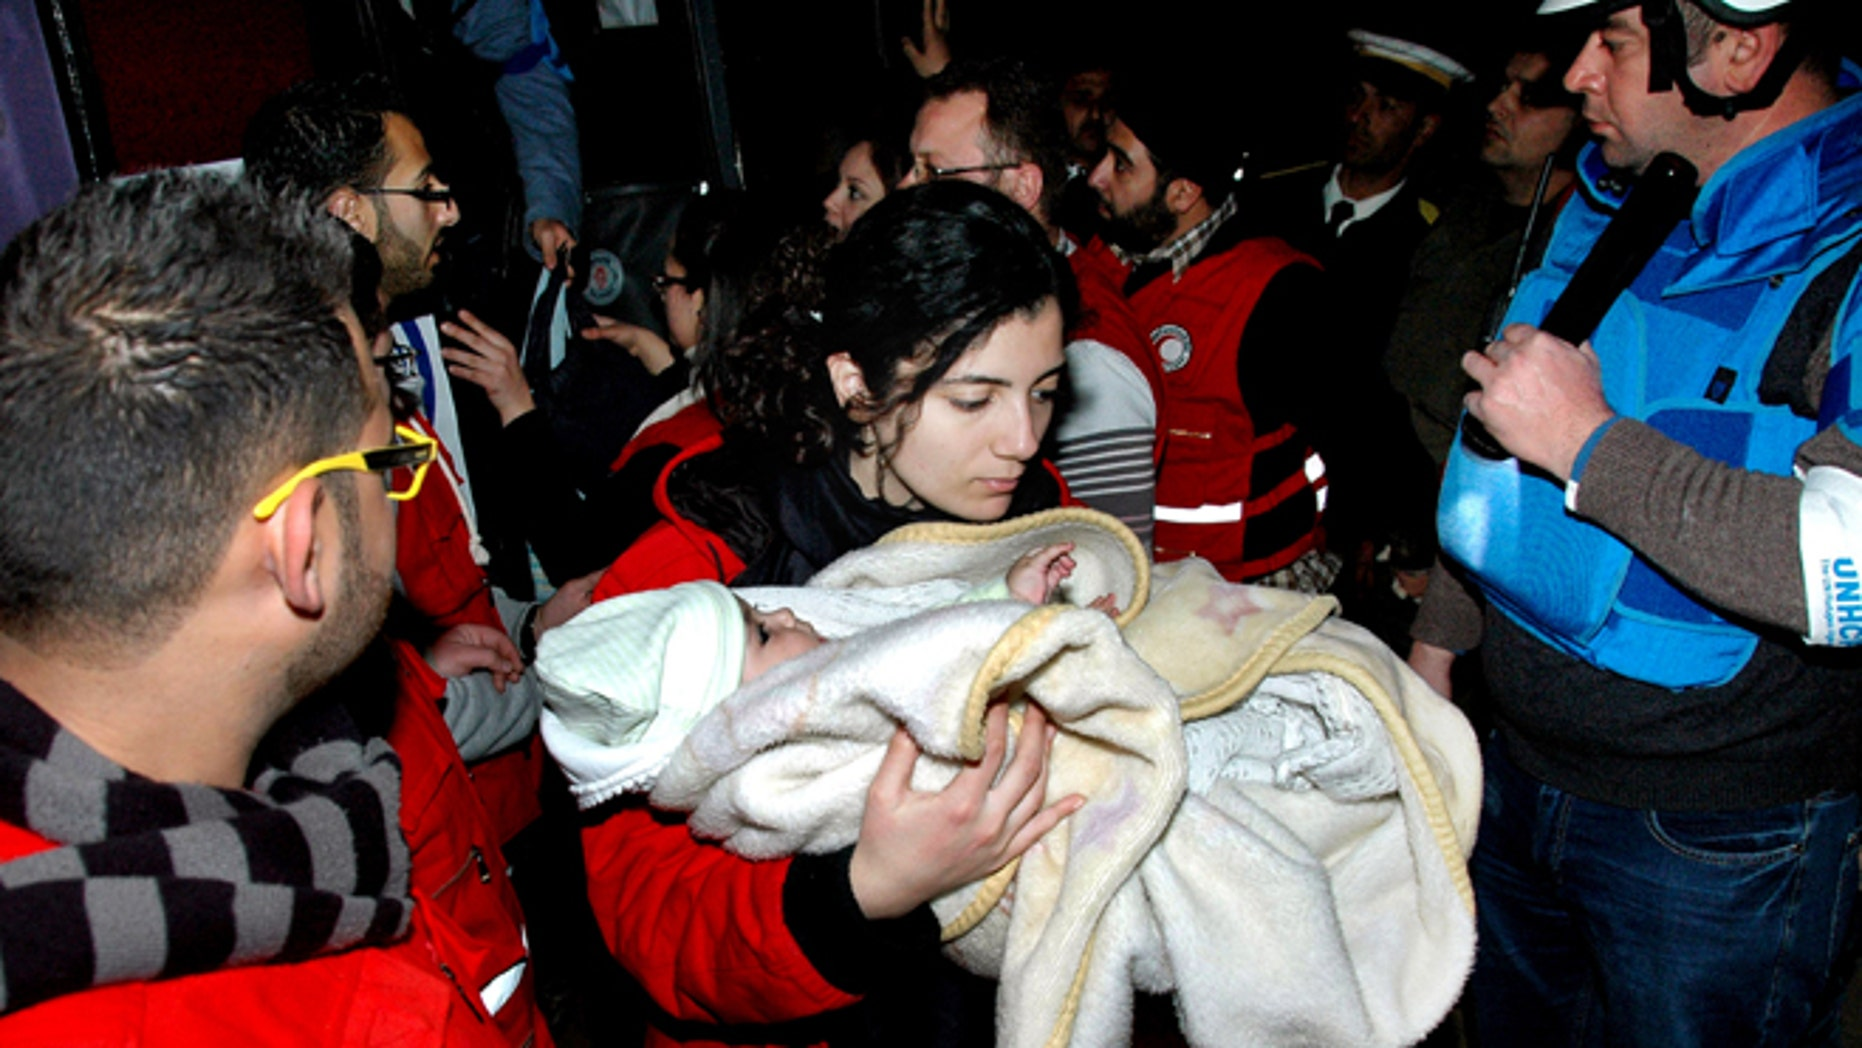 Feb. 10, 2014: In this photo released by the Syrian official news agency SANA, a Syrian Arab Red Crescent member in red uniform carries a baby on to a bus to evacuate the battleground city of Homs, Syria.